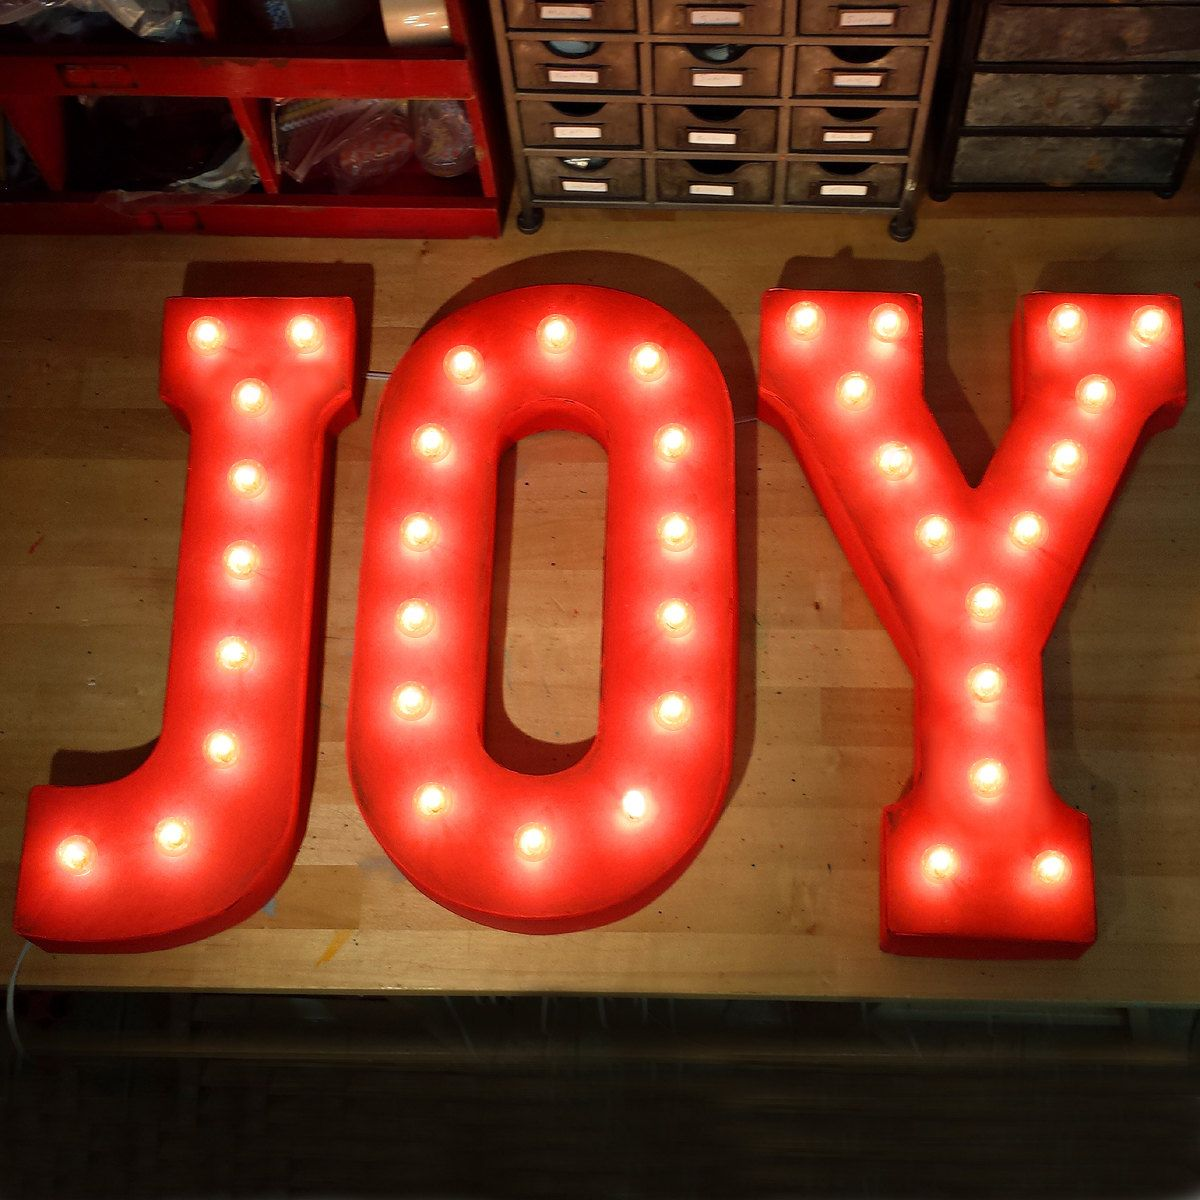 Red Metal Letters With Lights Joy Rustic Metal Letter Marquee Sign Light White Red Blue Green